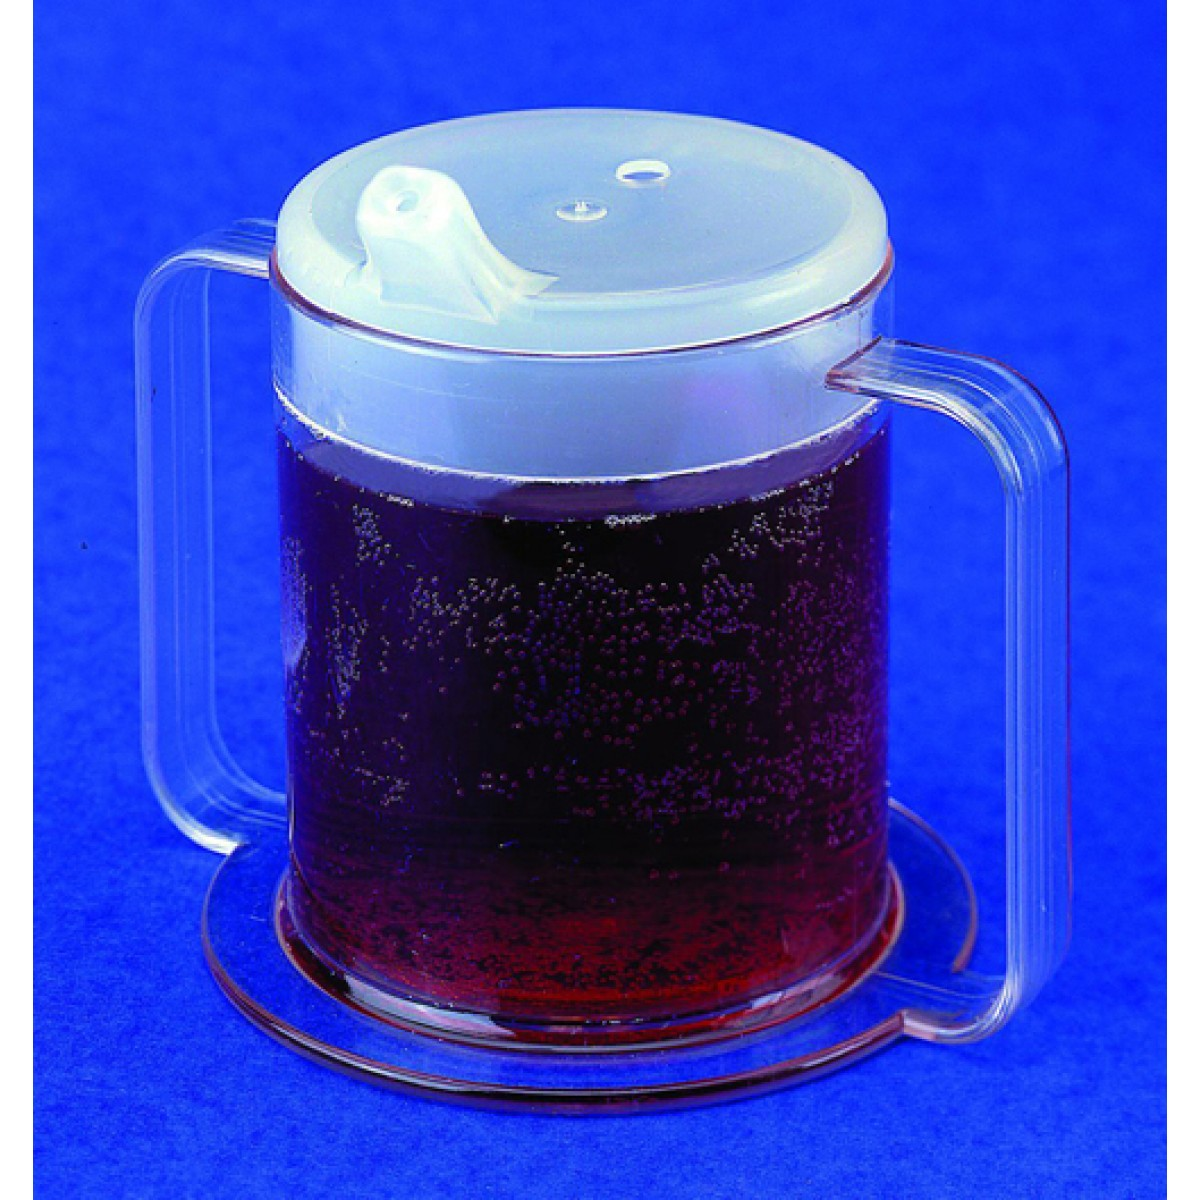 Independence 2 Handle Plastic Mug by Providence Spillproof Container